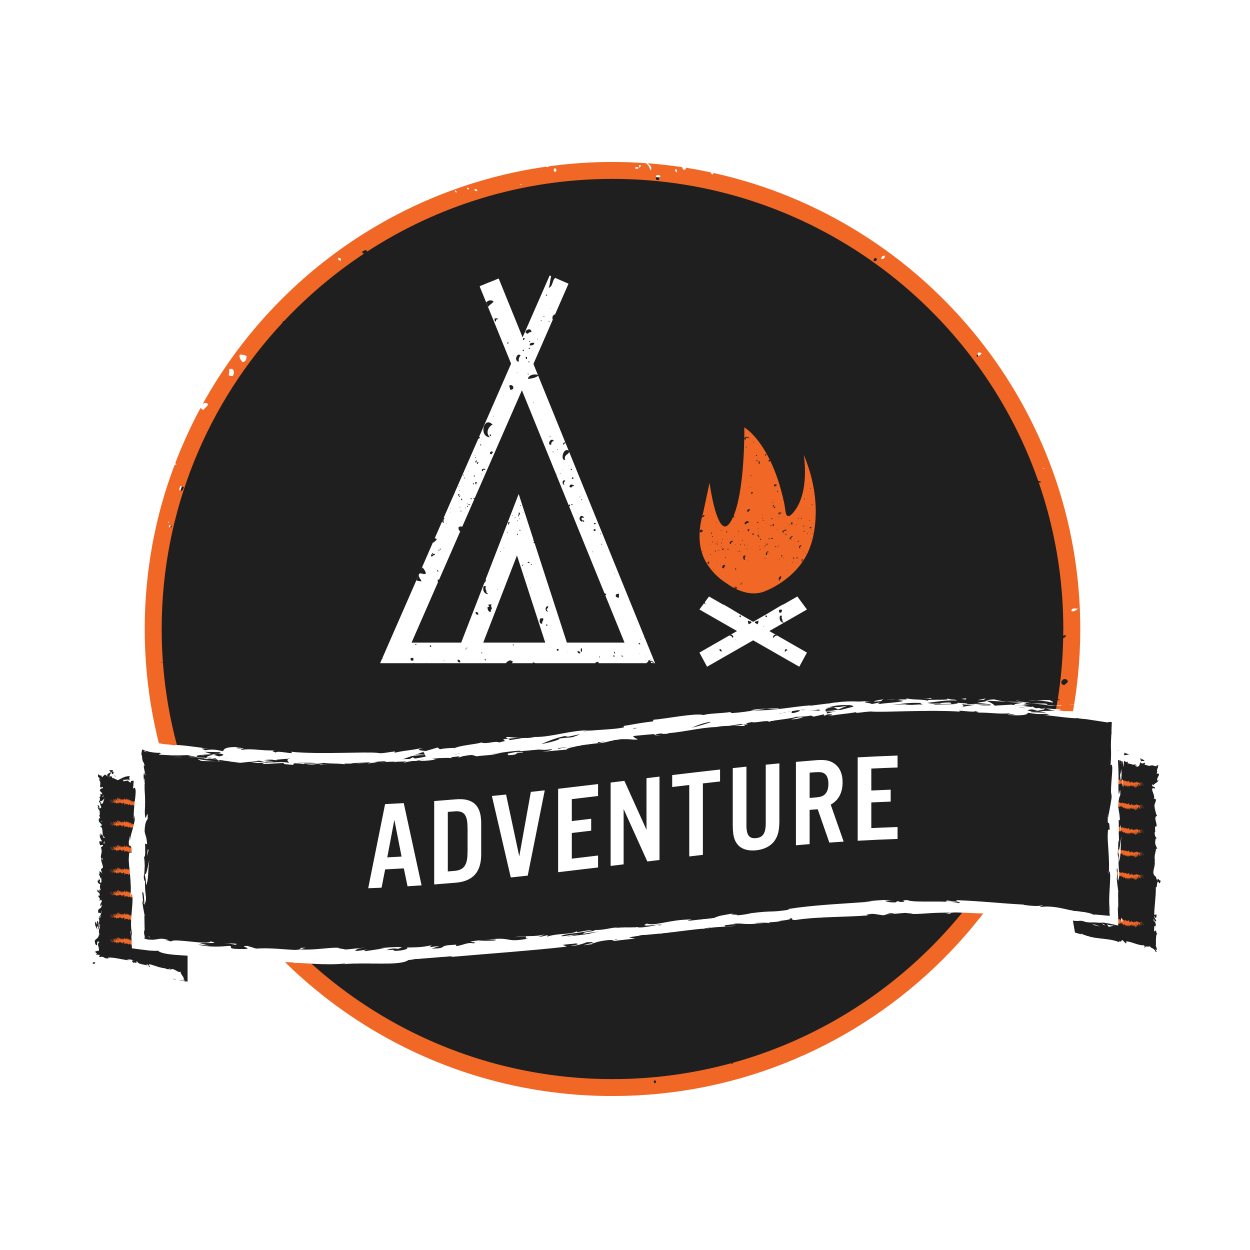 FORI ADVENTURE ICON-01-01-01.png